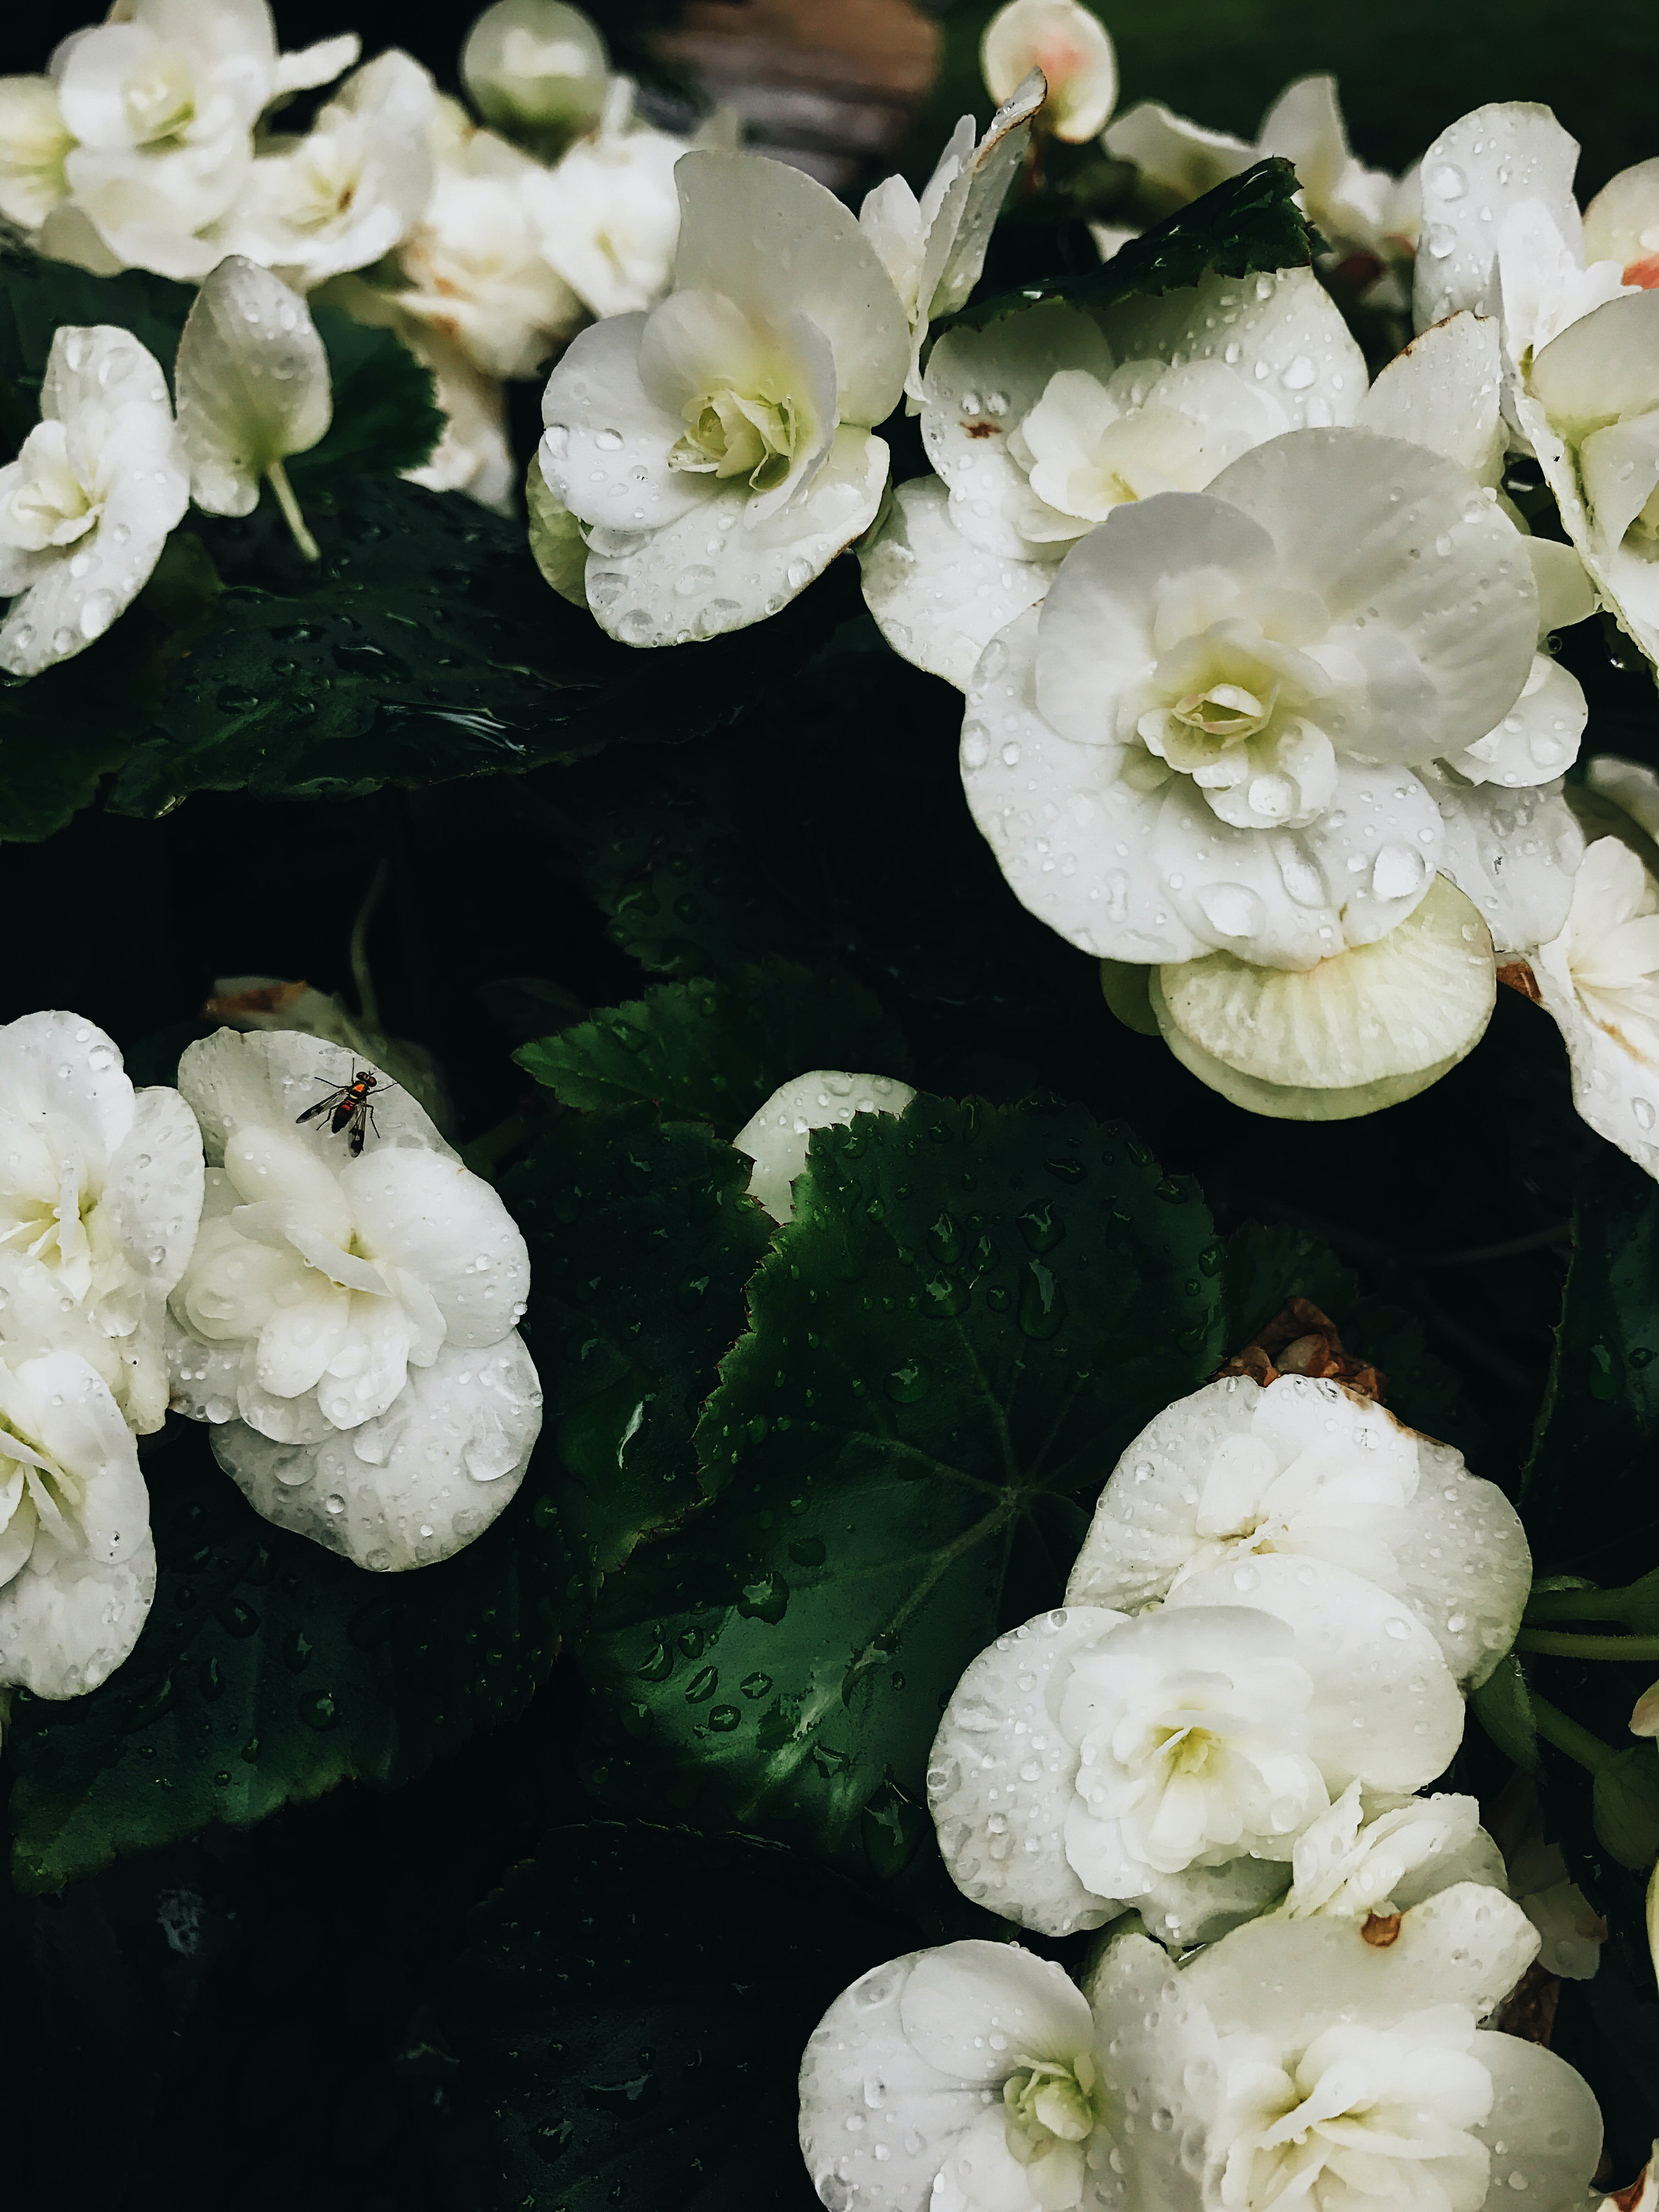 dew filled white petaled flowers